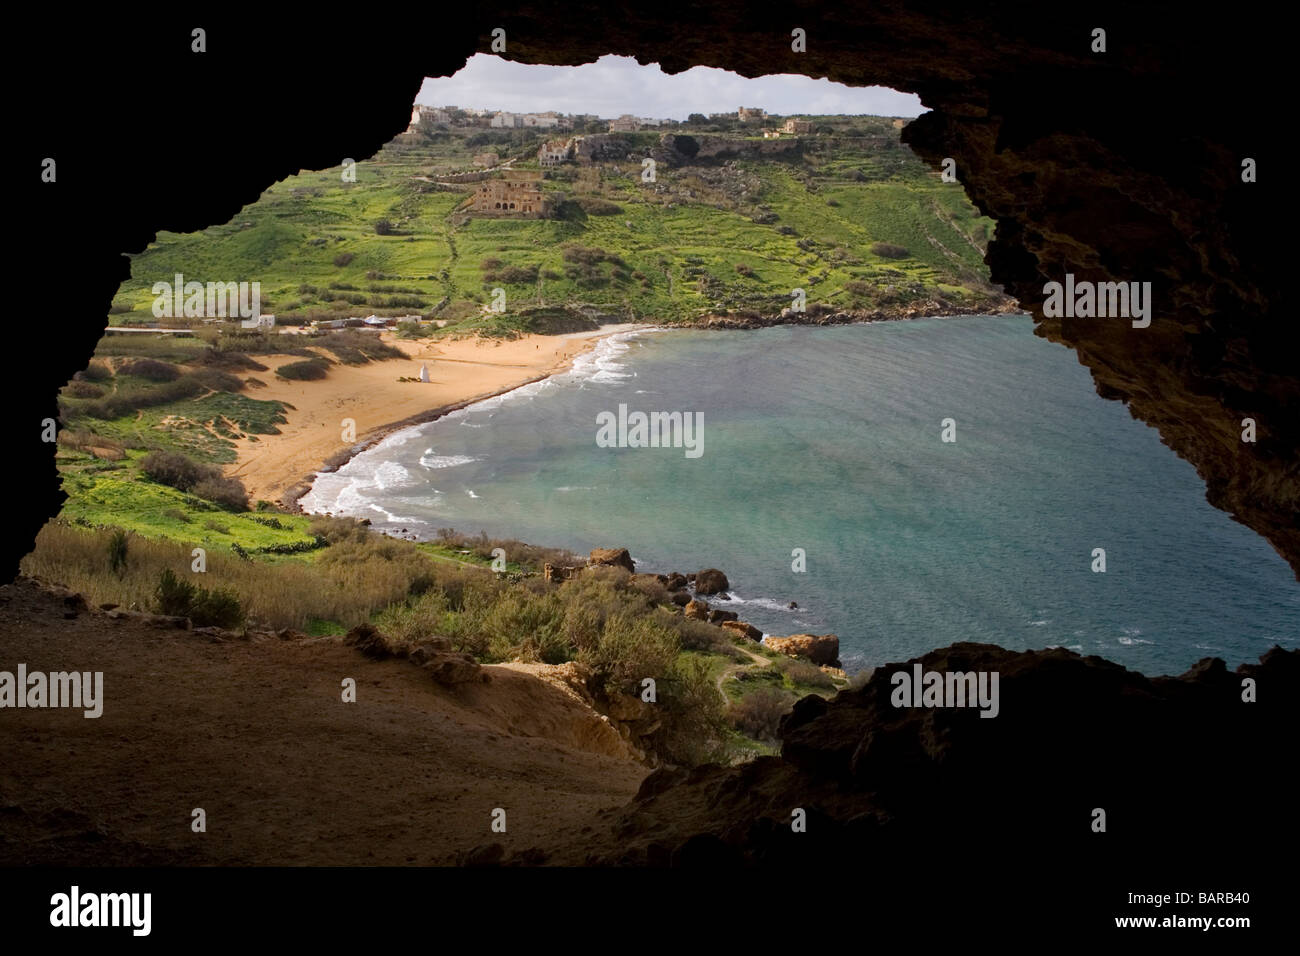 ramla-bay-gozo-as-seen-from-a-cave-overl